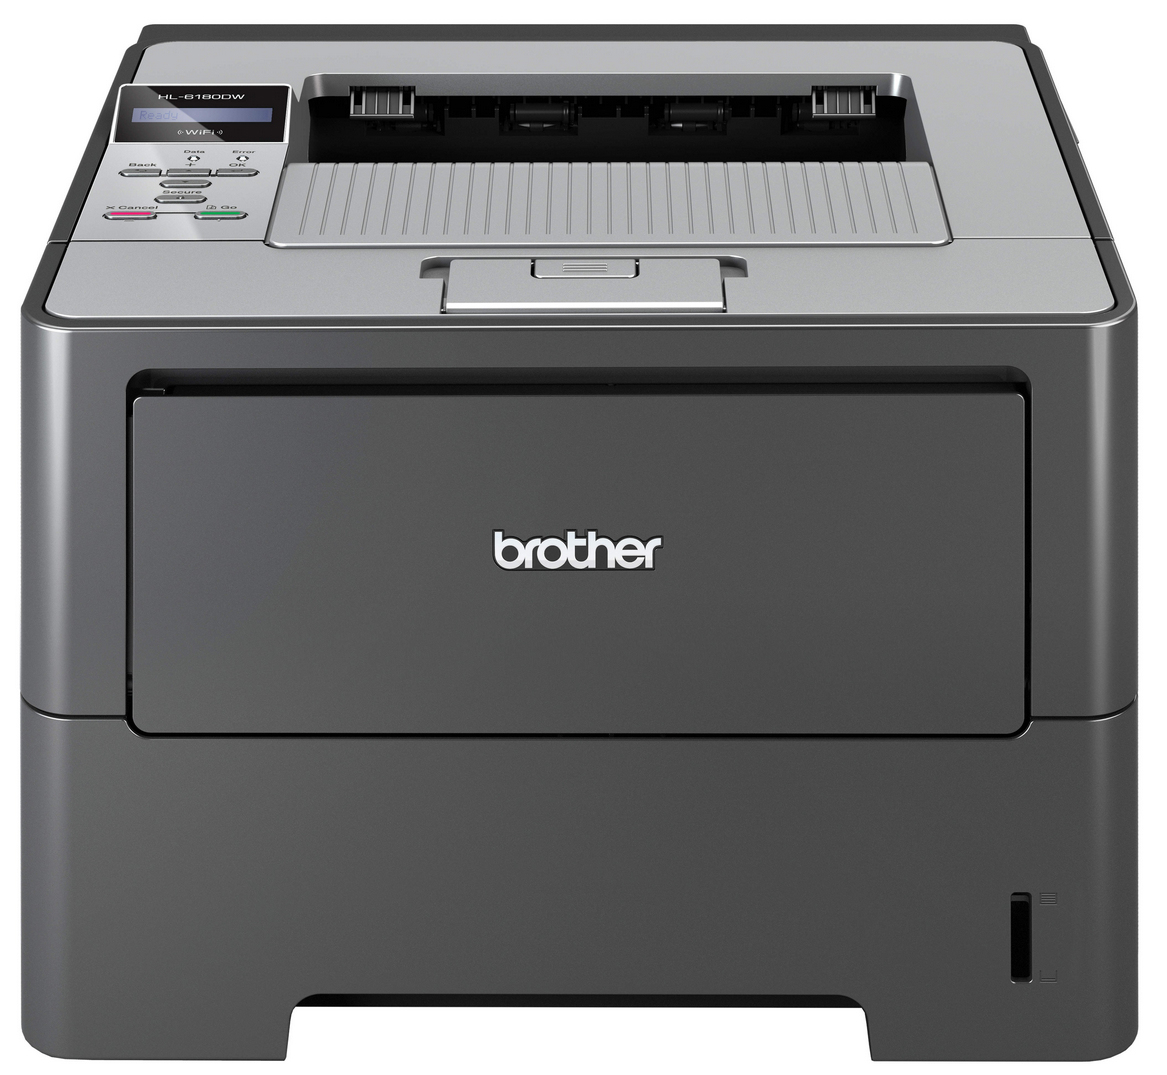 Brother HL-6180DW Mono Laser Printer HL-6180DW - Refurbished